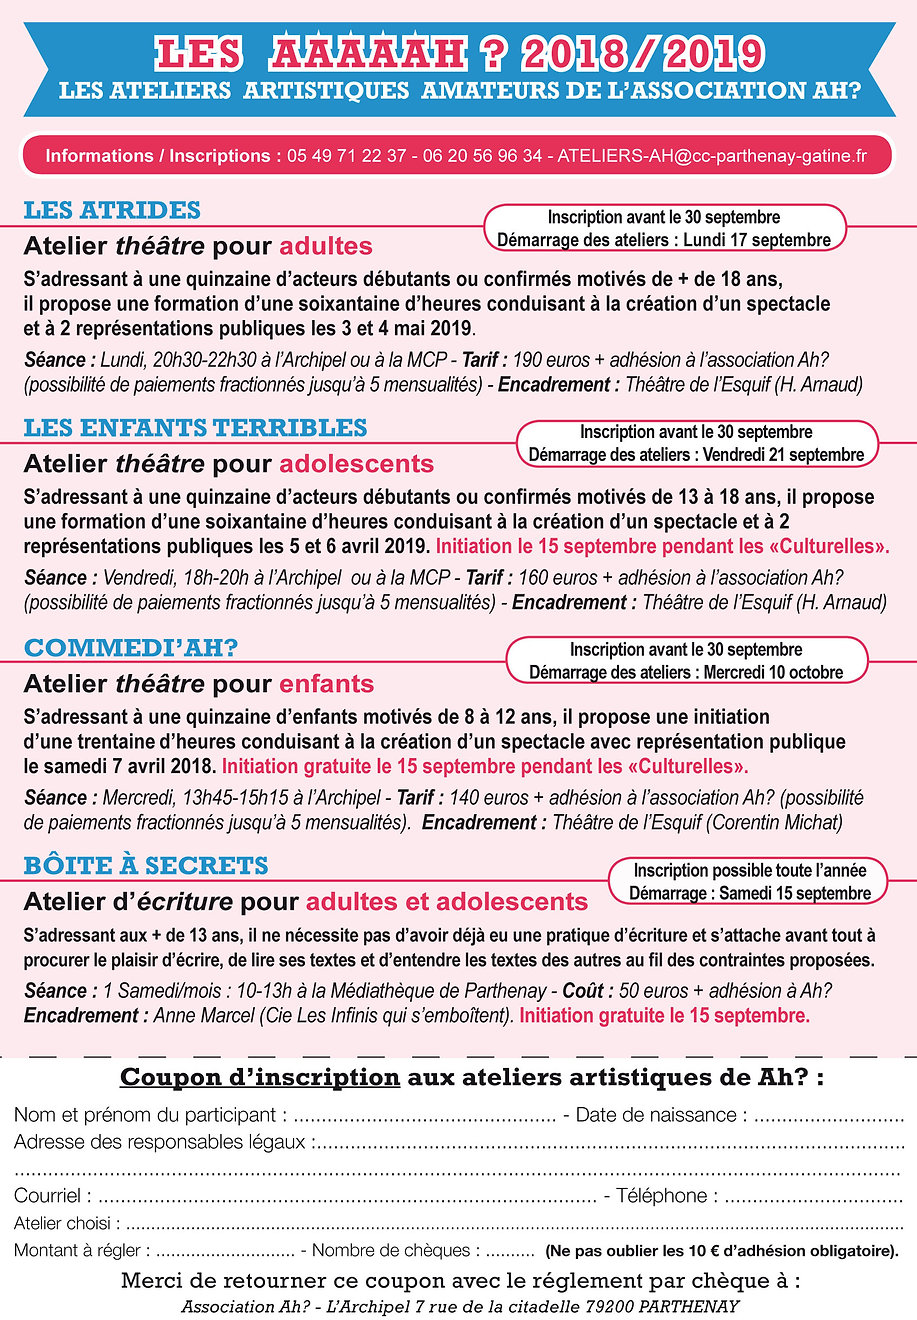 Bulletin-Inscription-Ateliers-AH-18-19.j